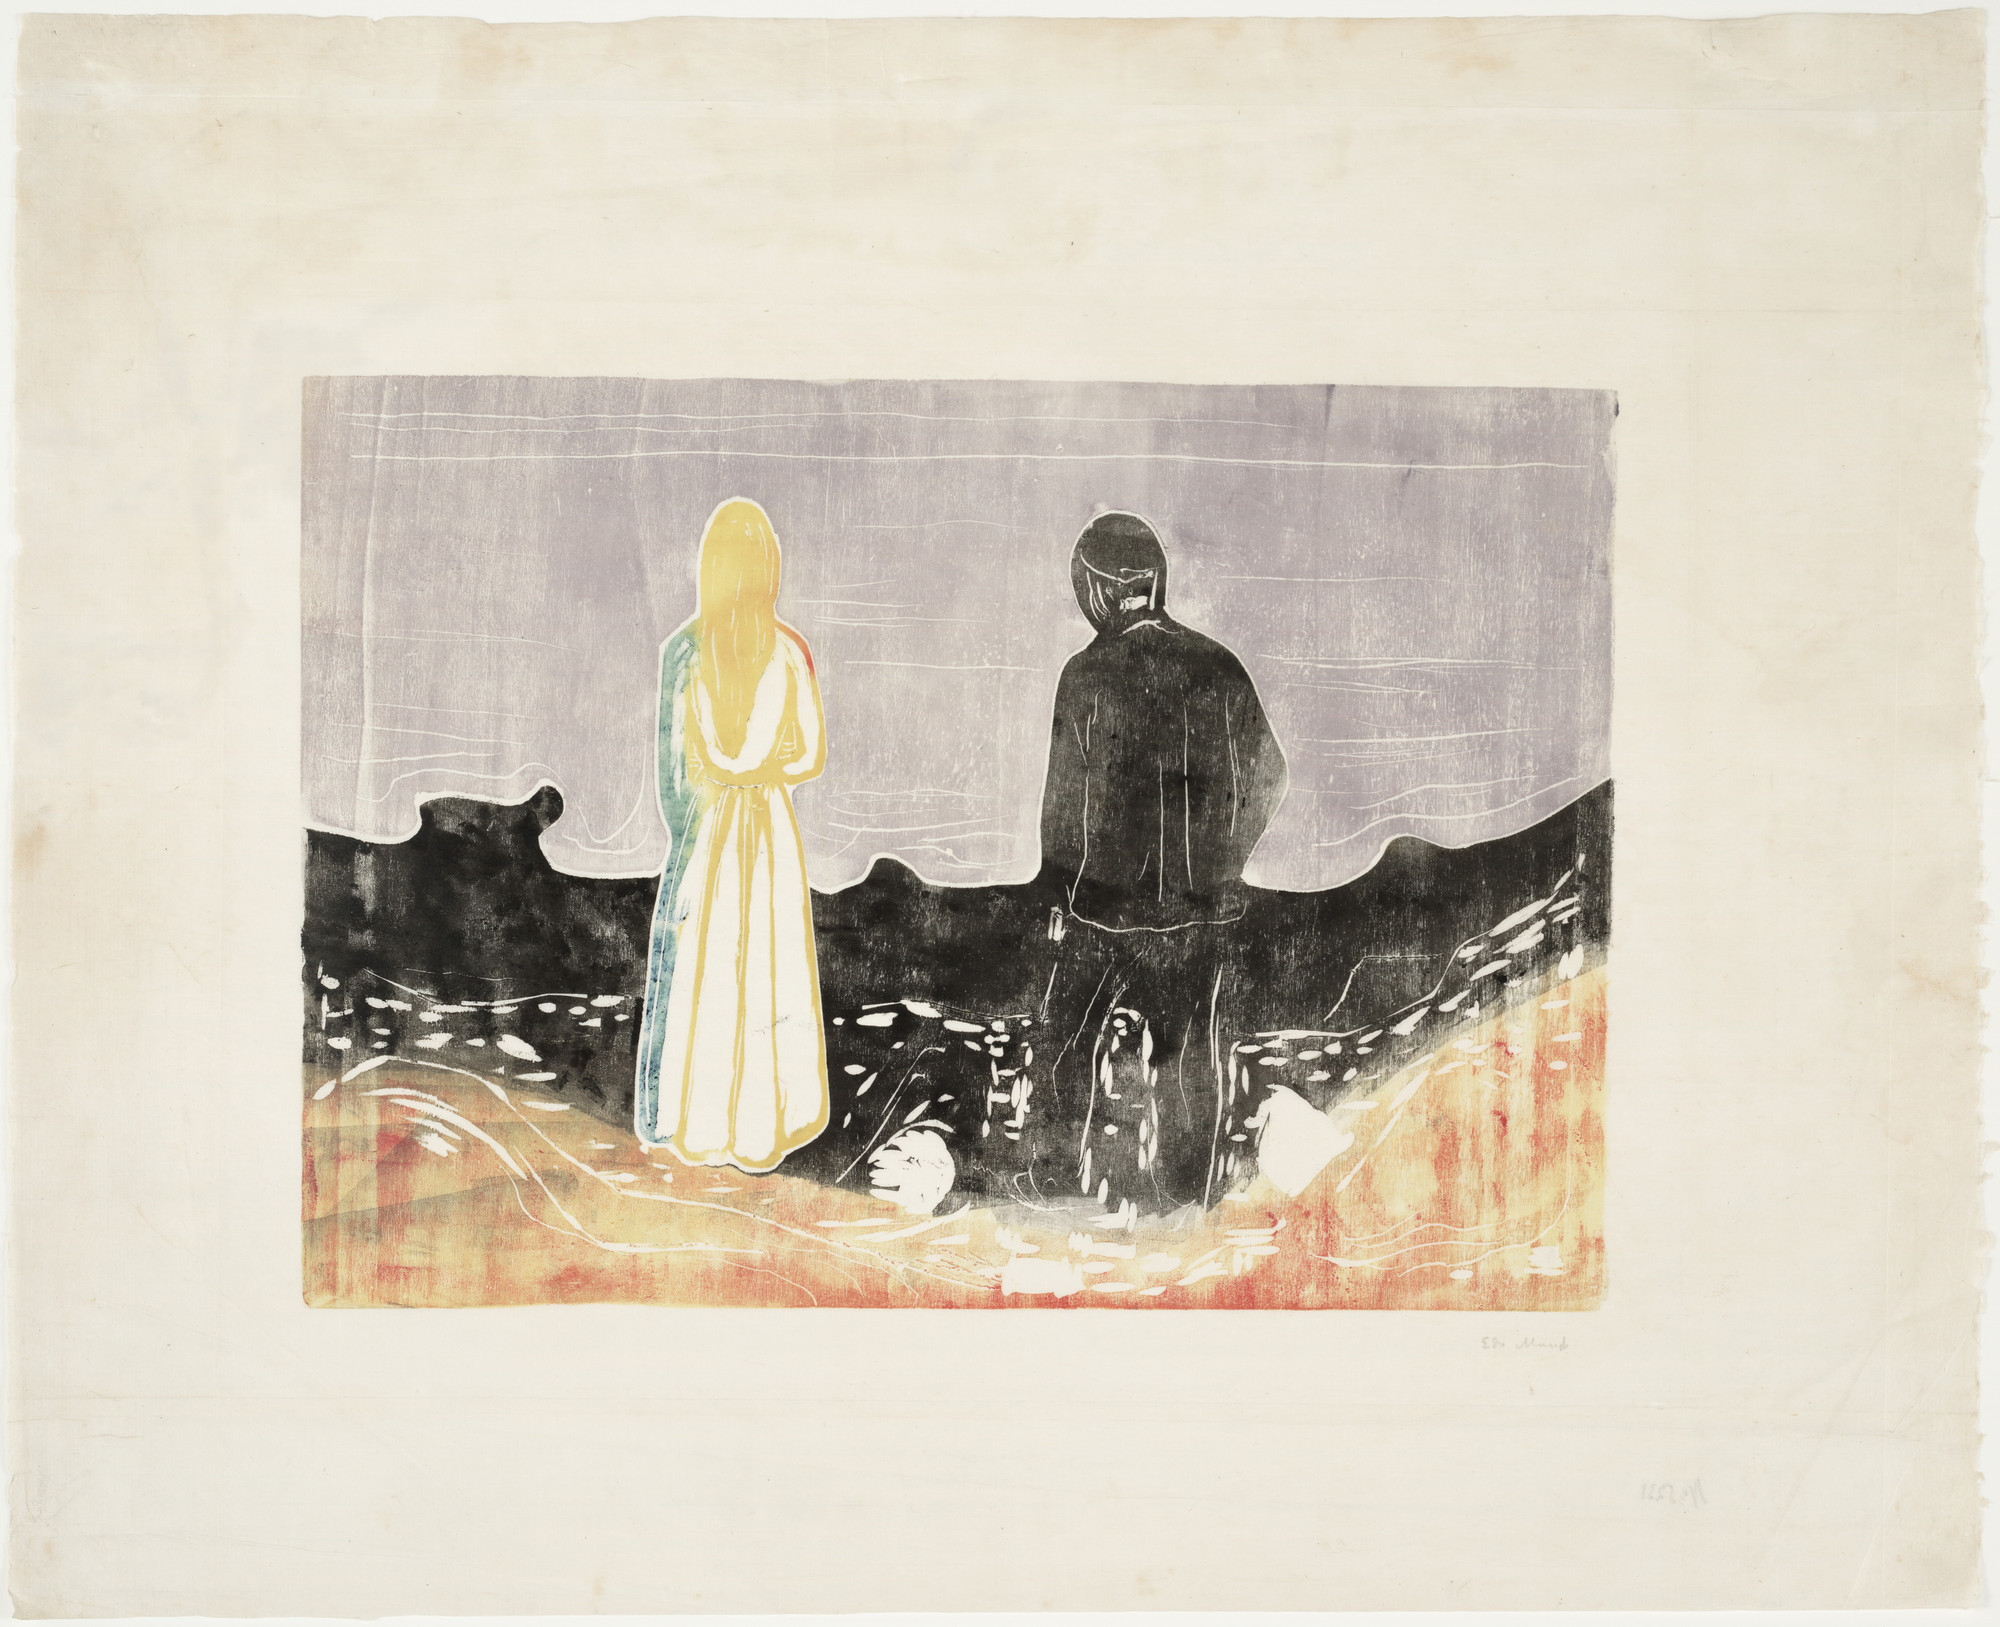 Edvard Munch. Two People. The Lonely Ones (To mennesker. De ensomme). 1899/1917